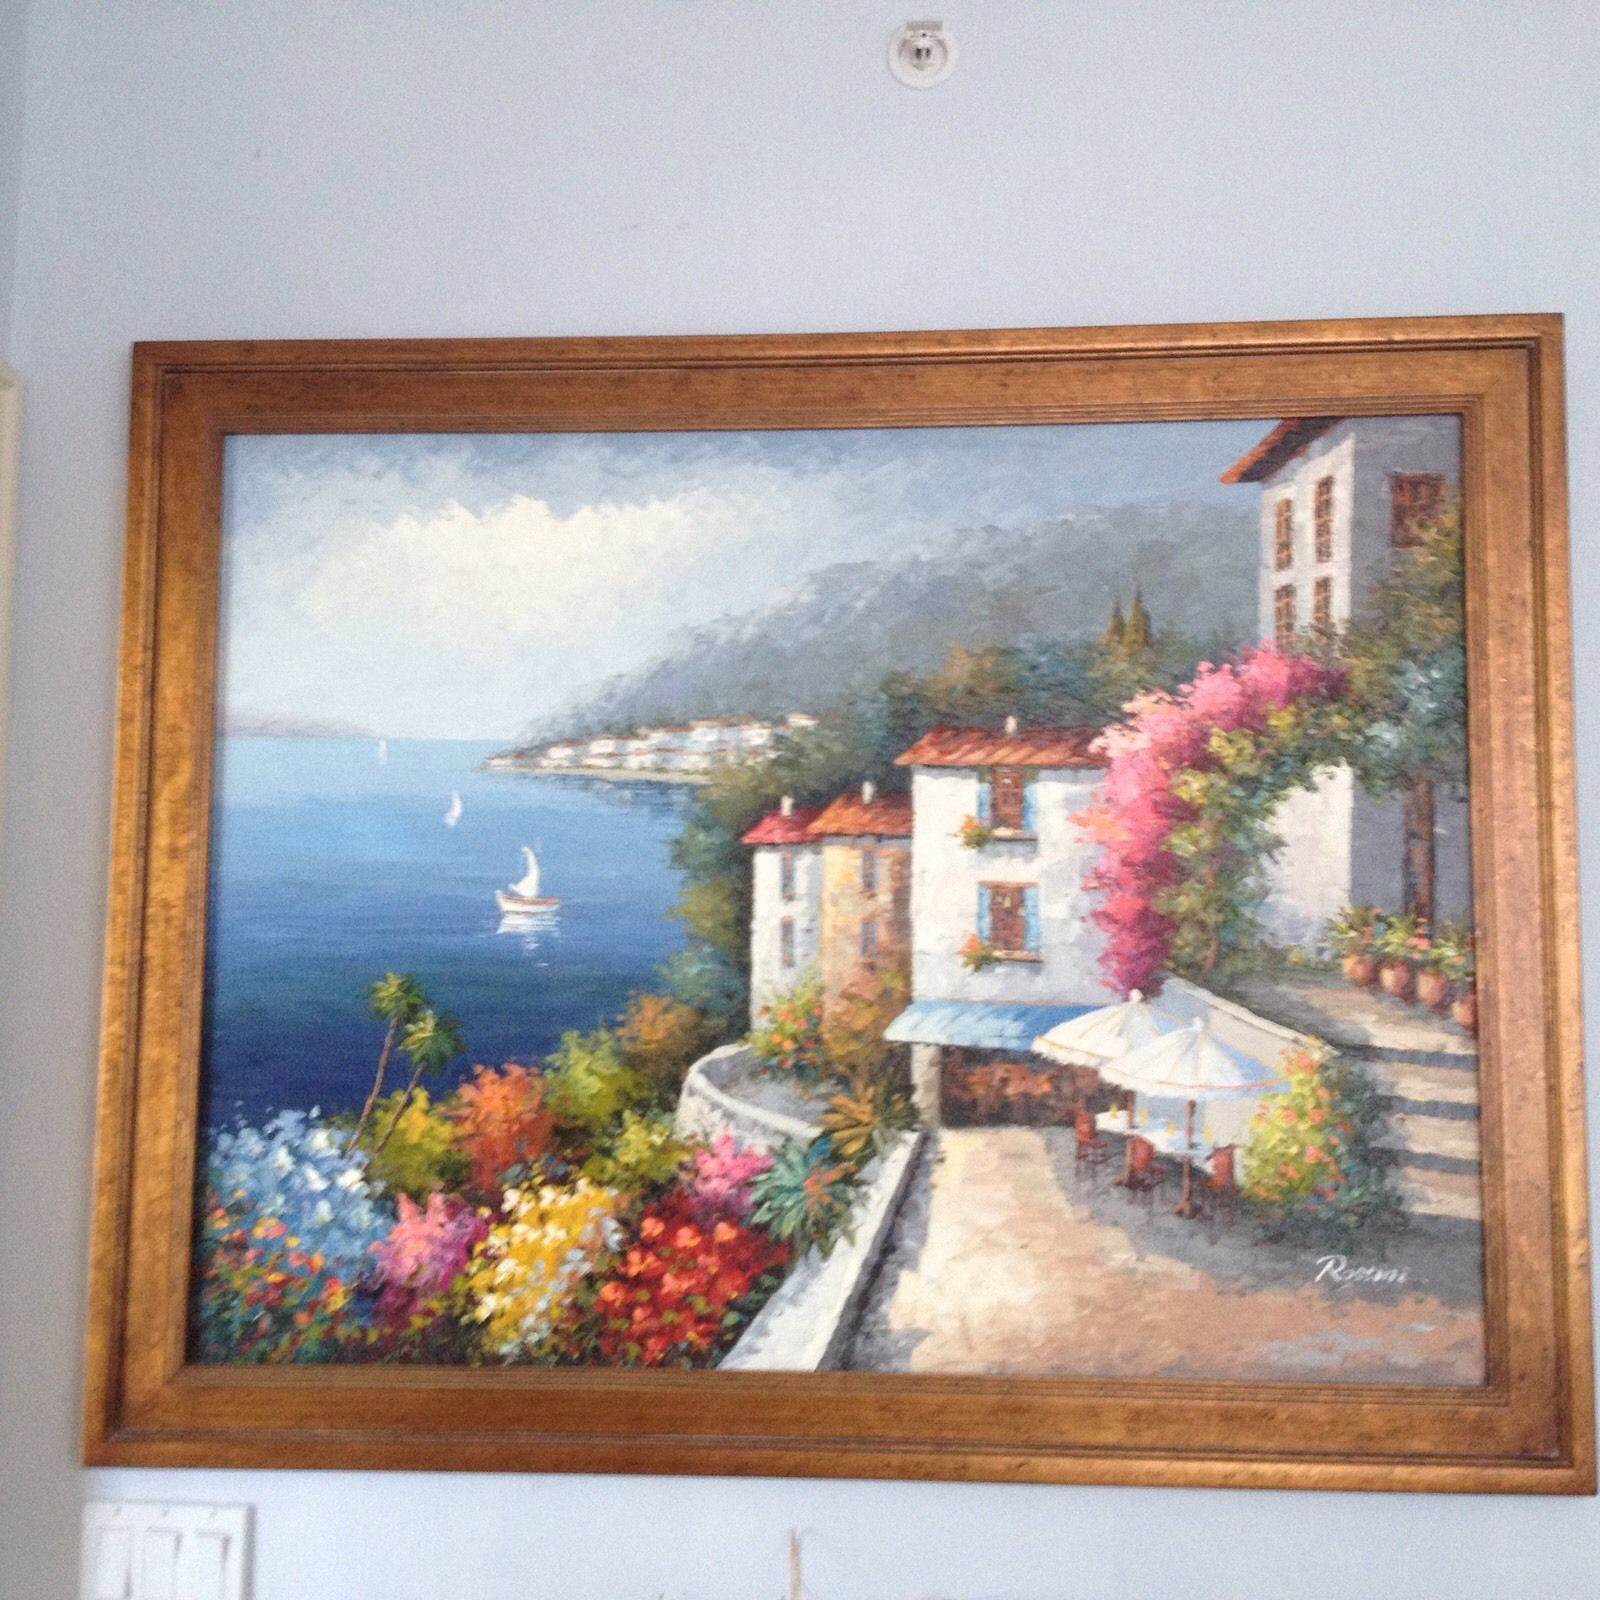 "Primary image for Ocean Beauty! Mediterranean painting by Rossini approximately 43"" X 56"""